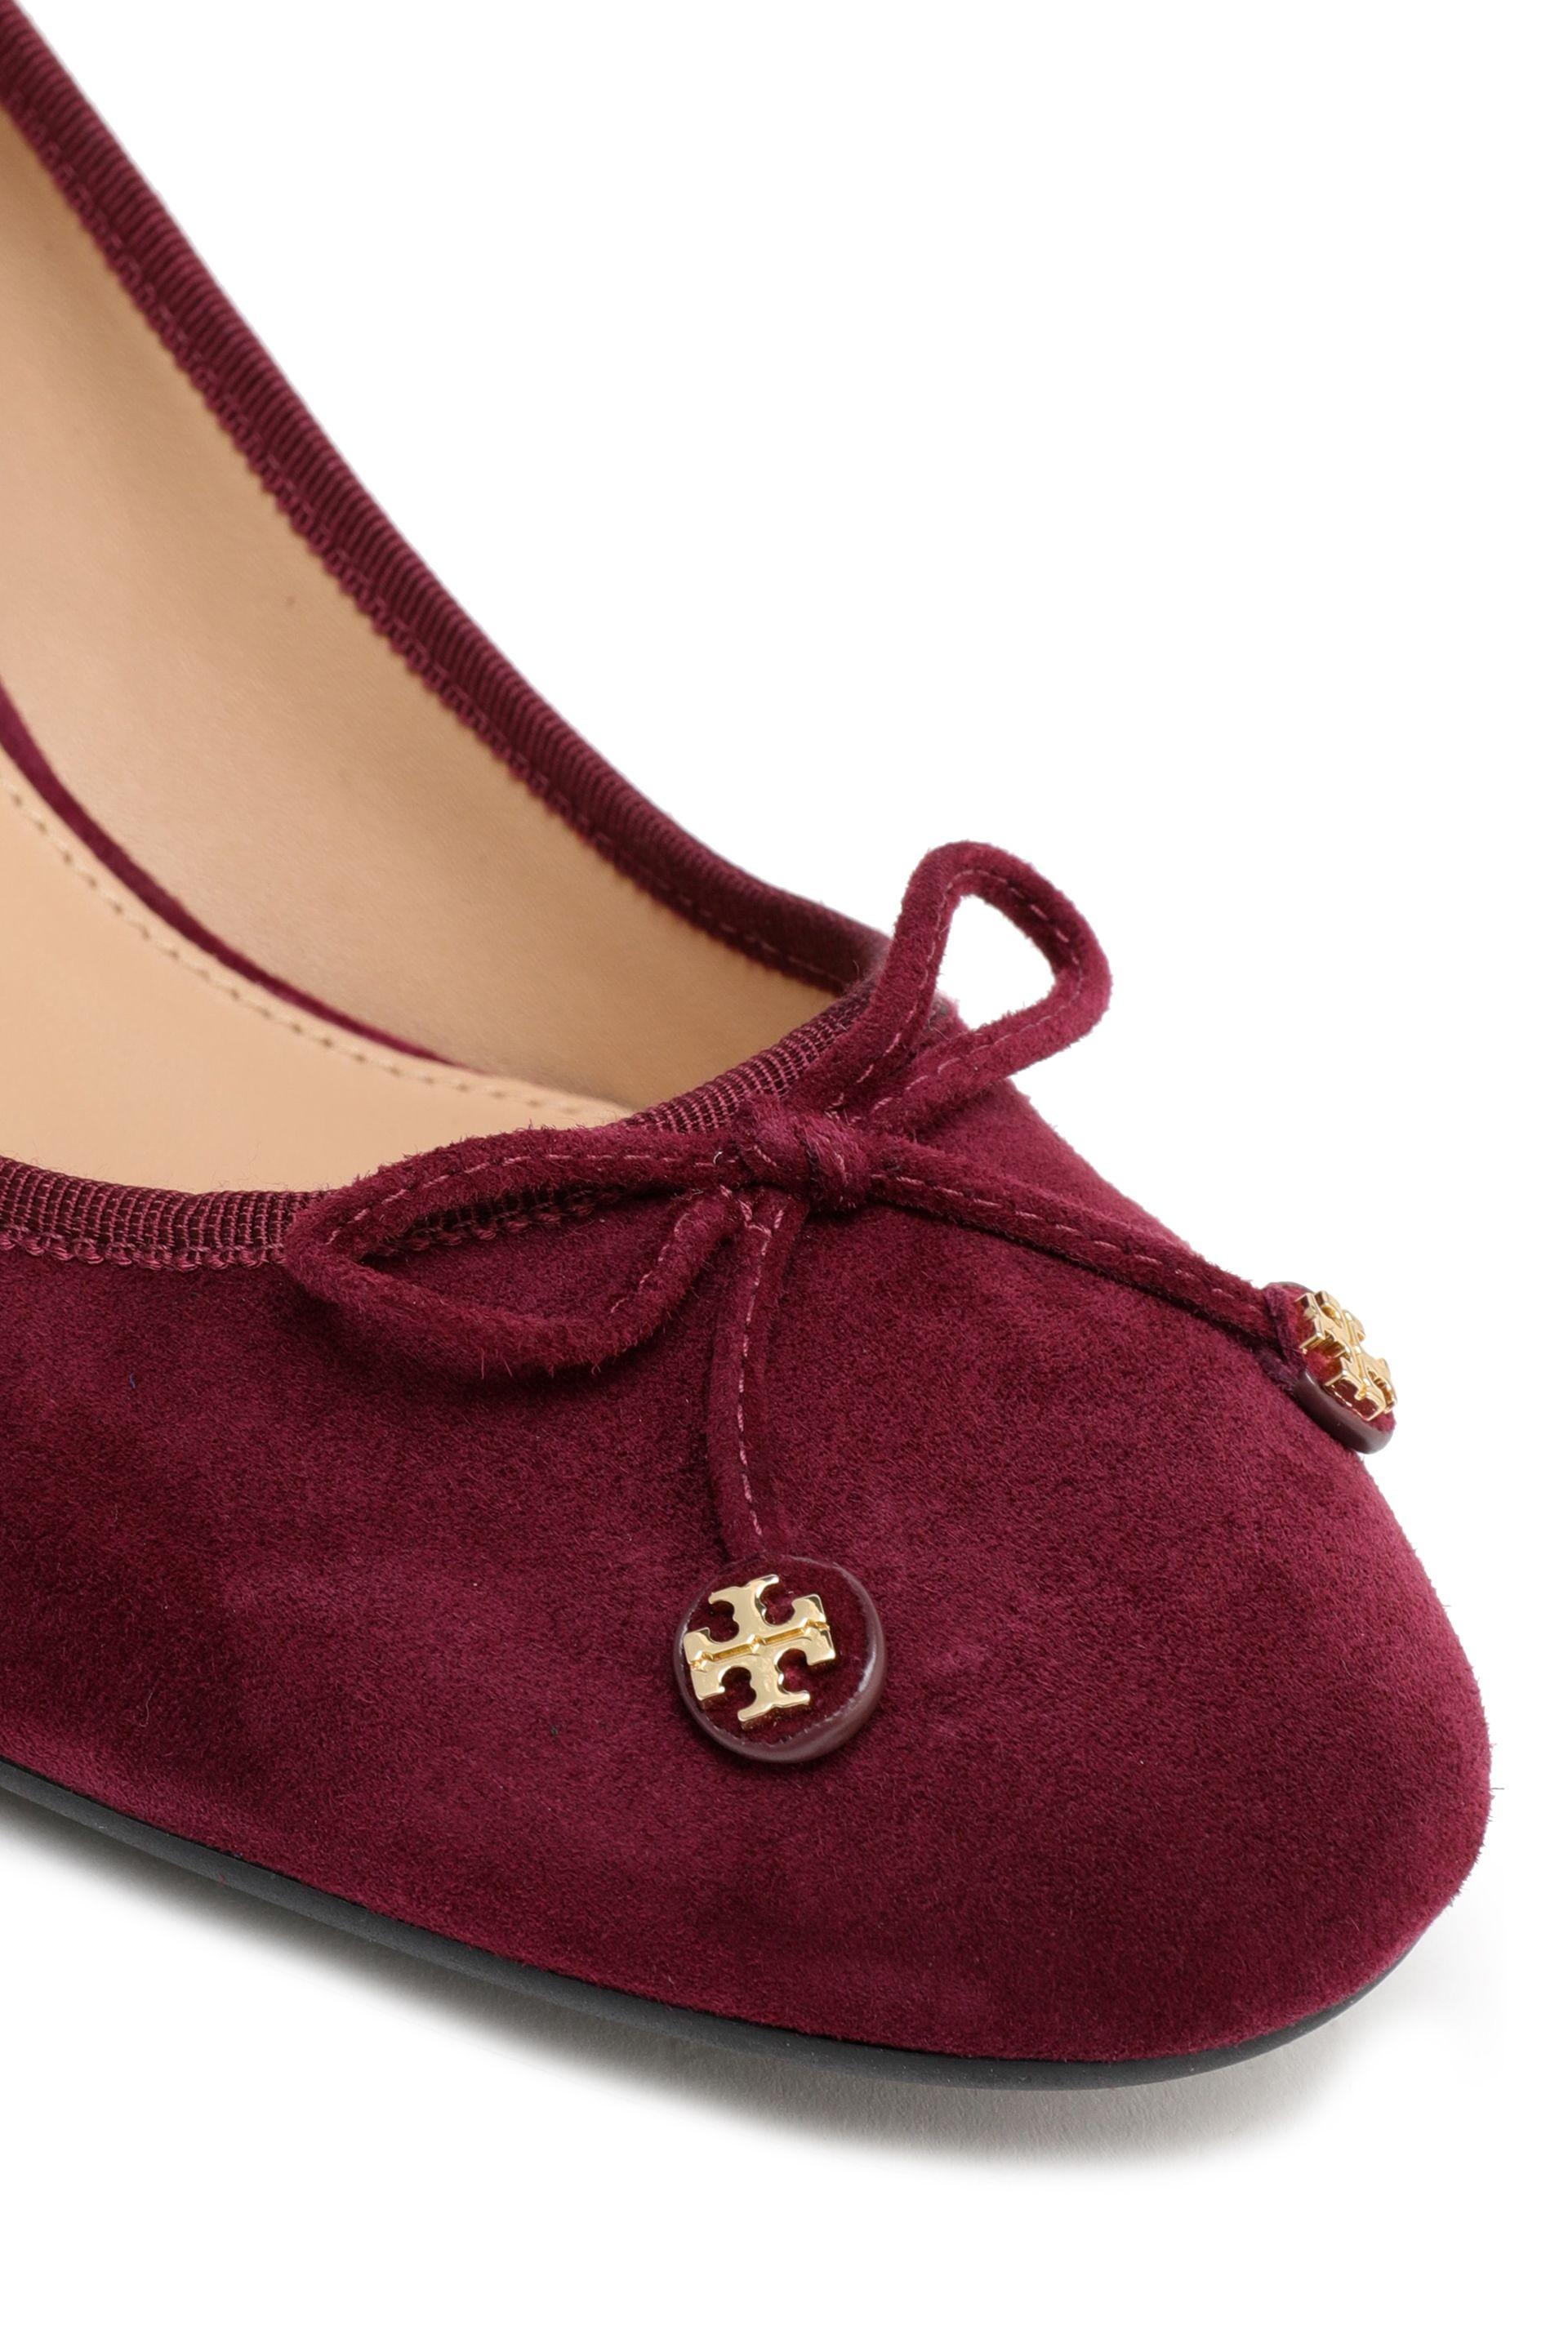 255ce9a5bfa9 Tory Burch - Red Woman Bow-detailed Suede Pumps Burgundy - Lyst. View  fullscreen